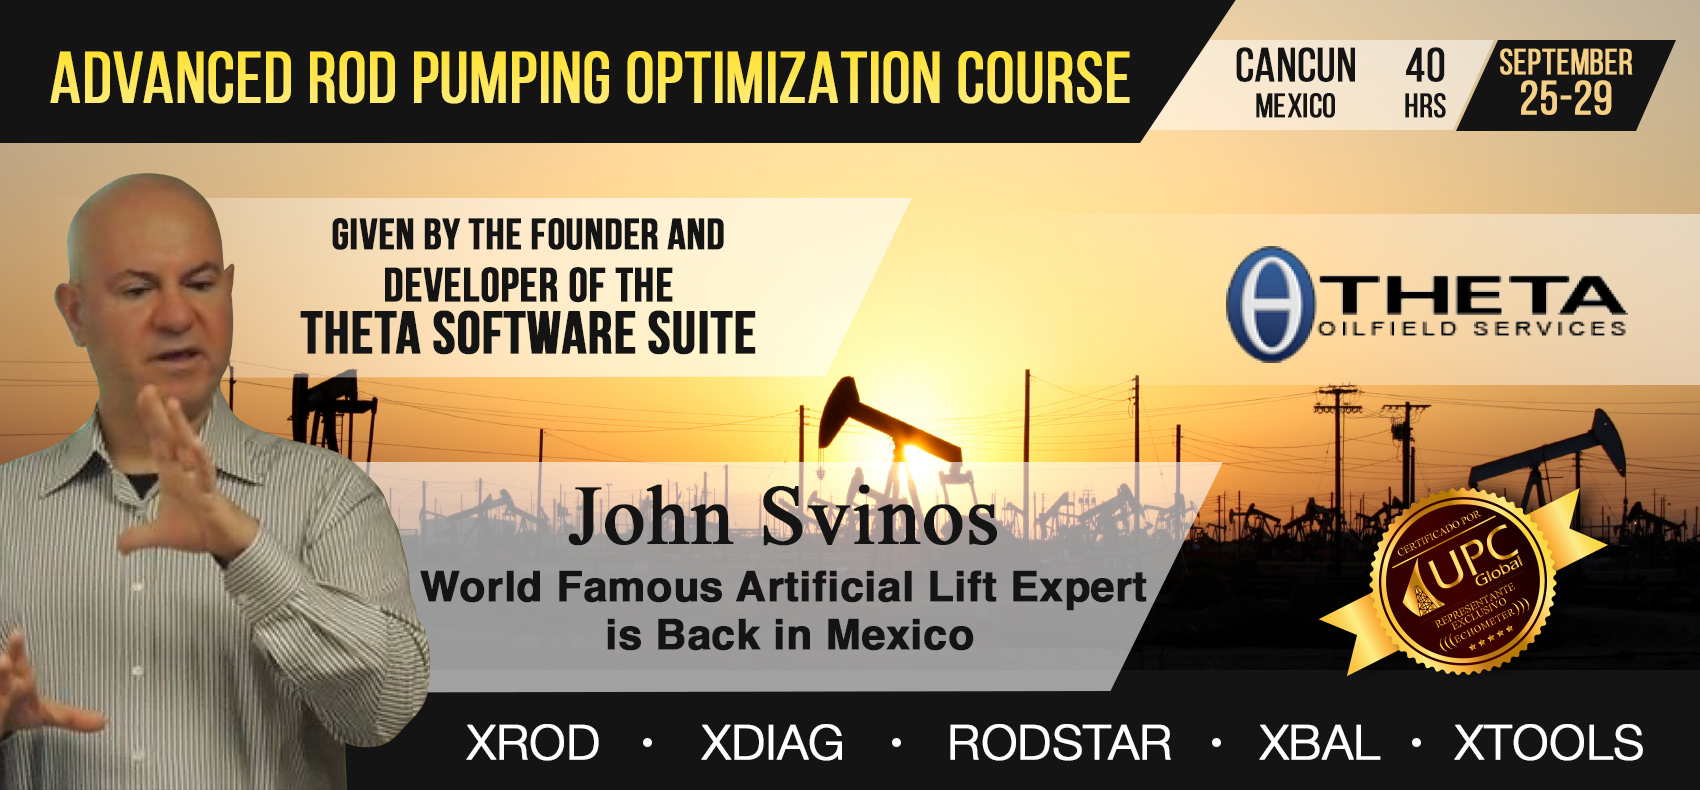 Rod Pumping Optimization Course by John Svinos